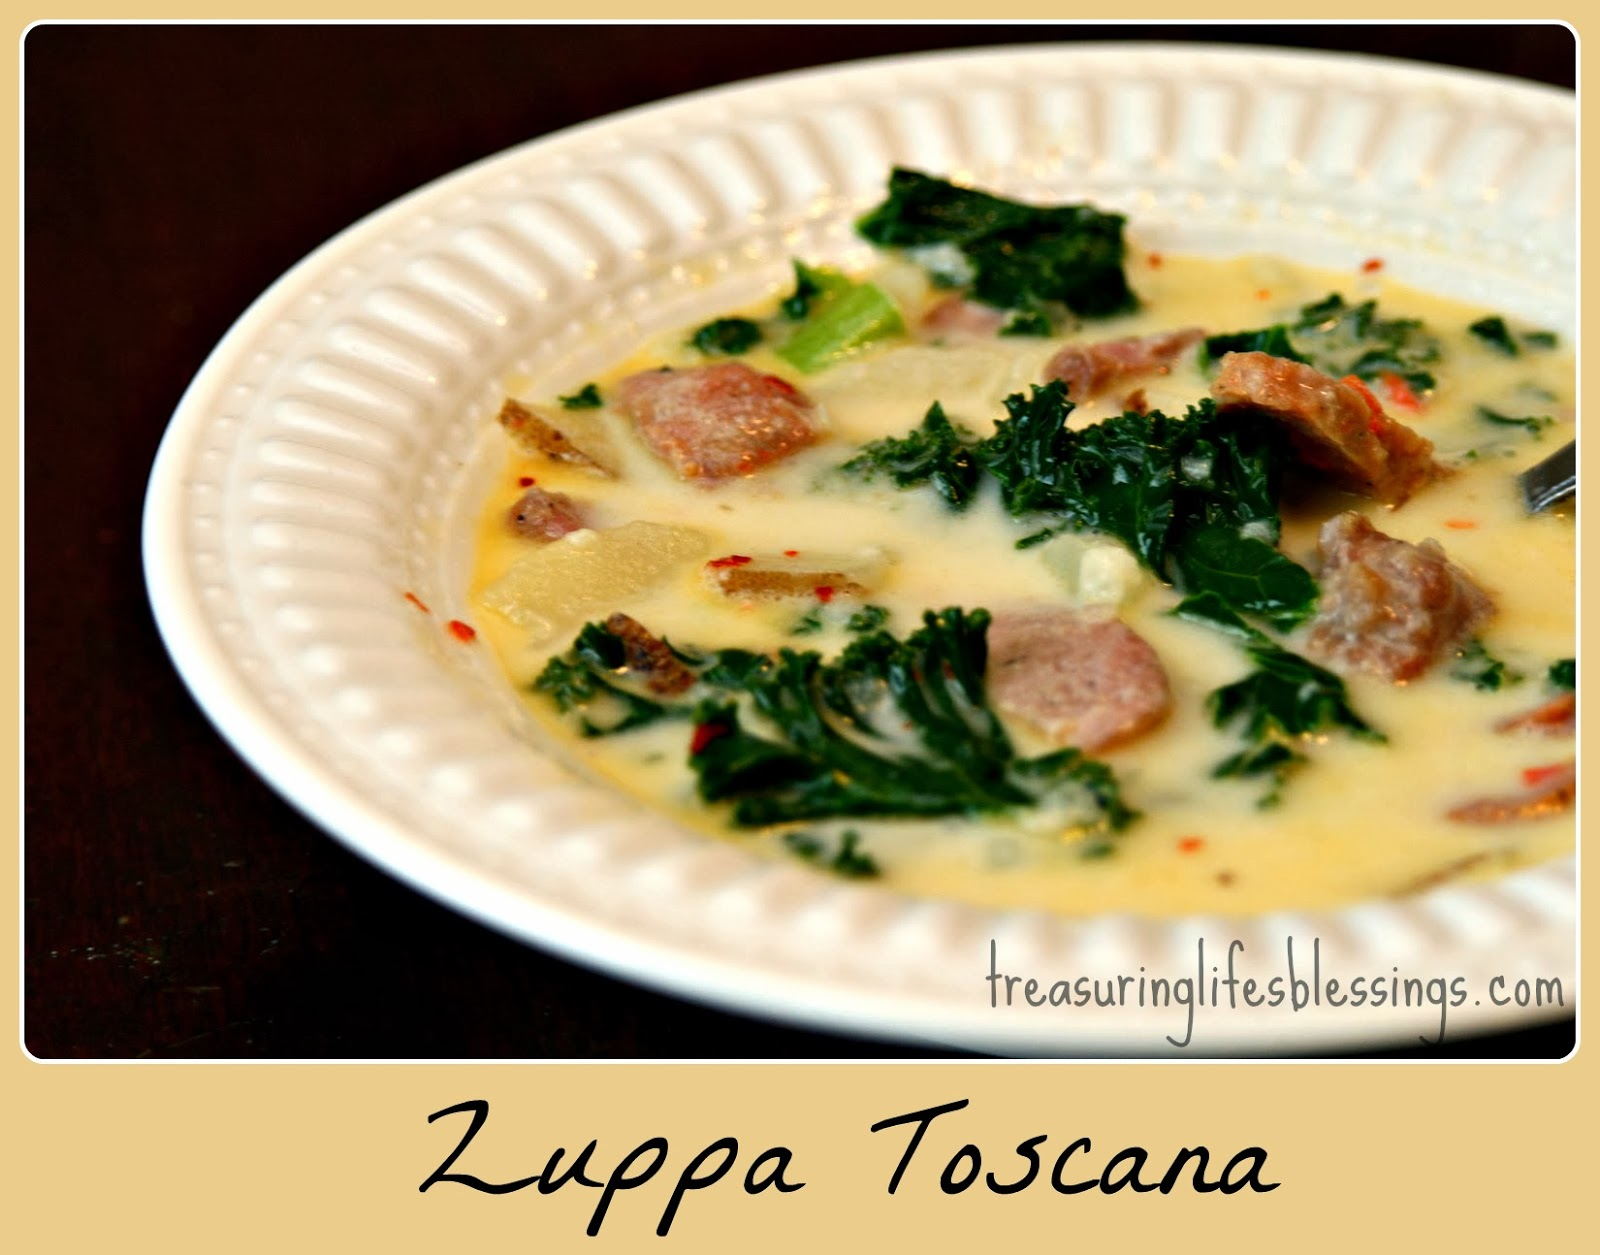 Zuppa Tuscana, soup, olive garden soup